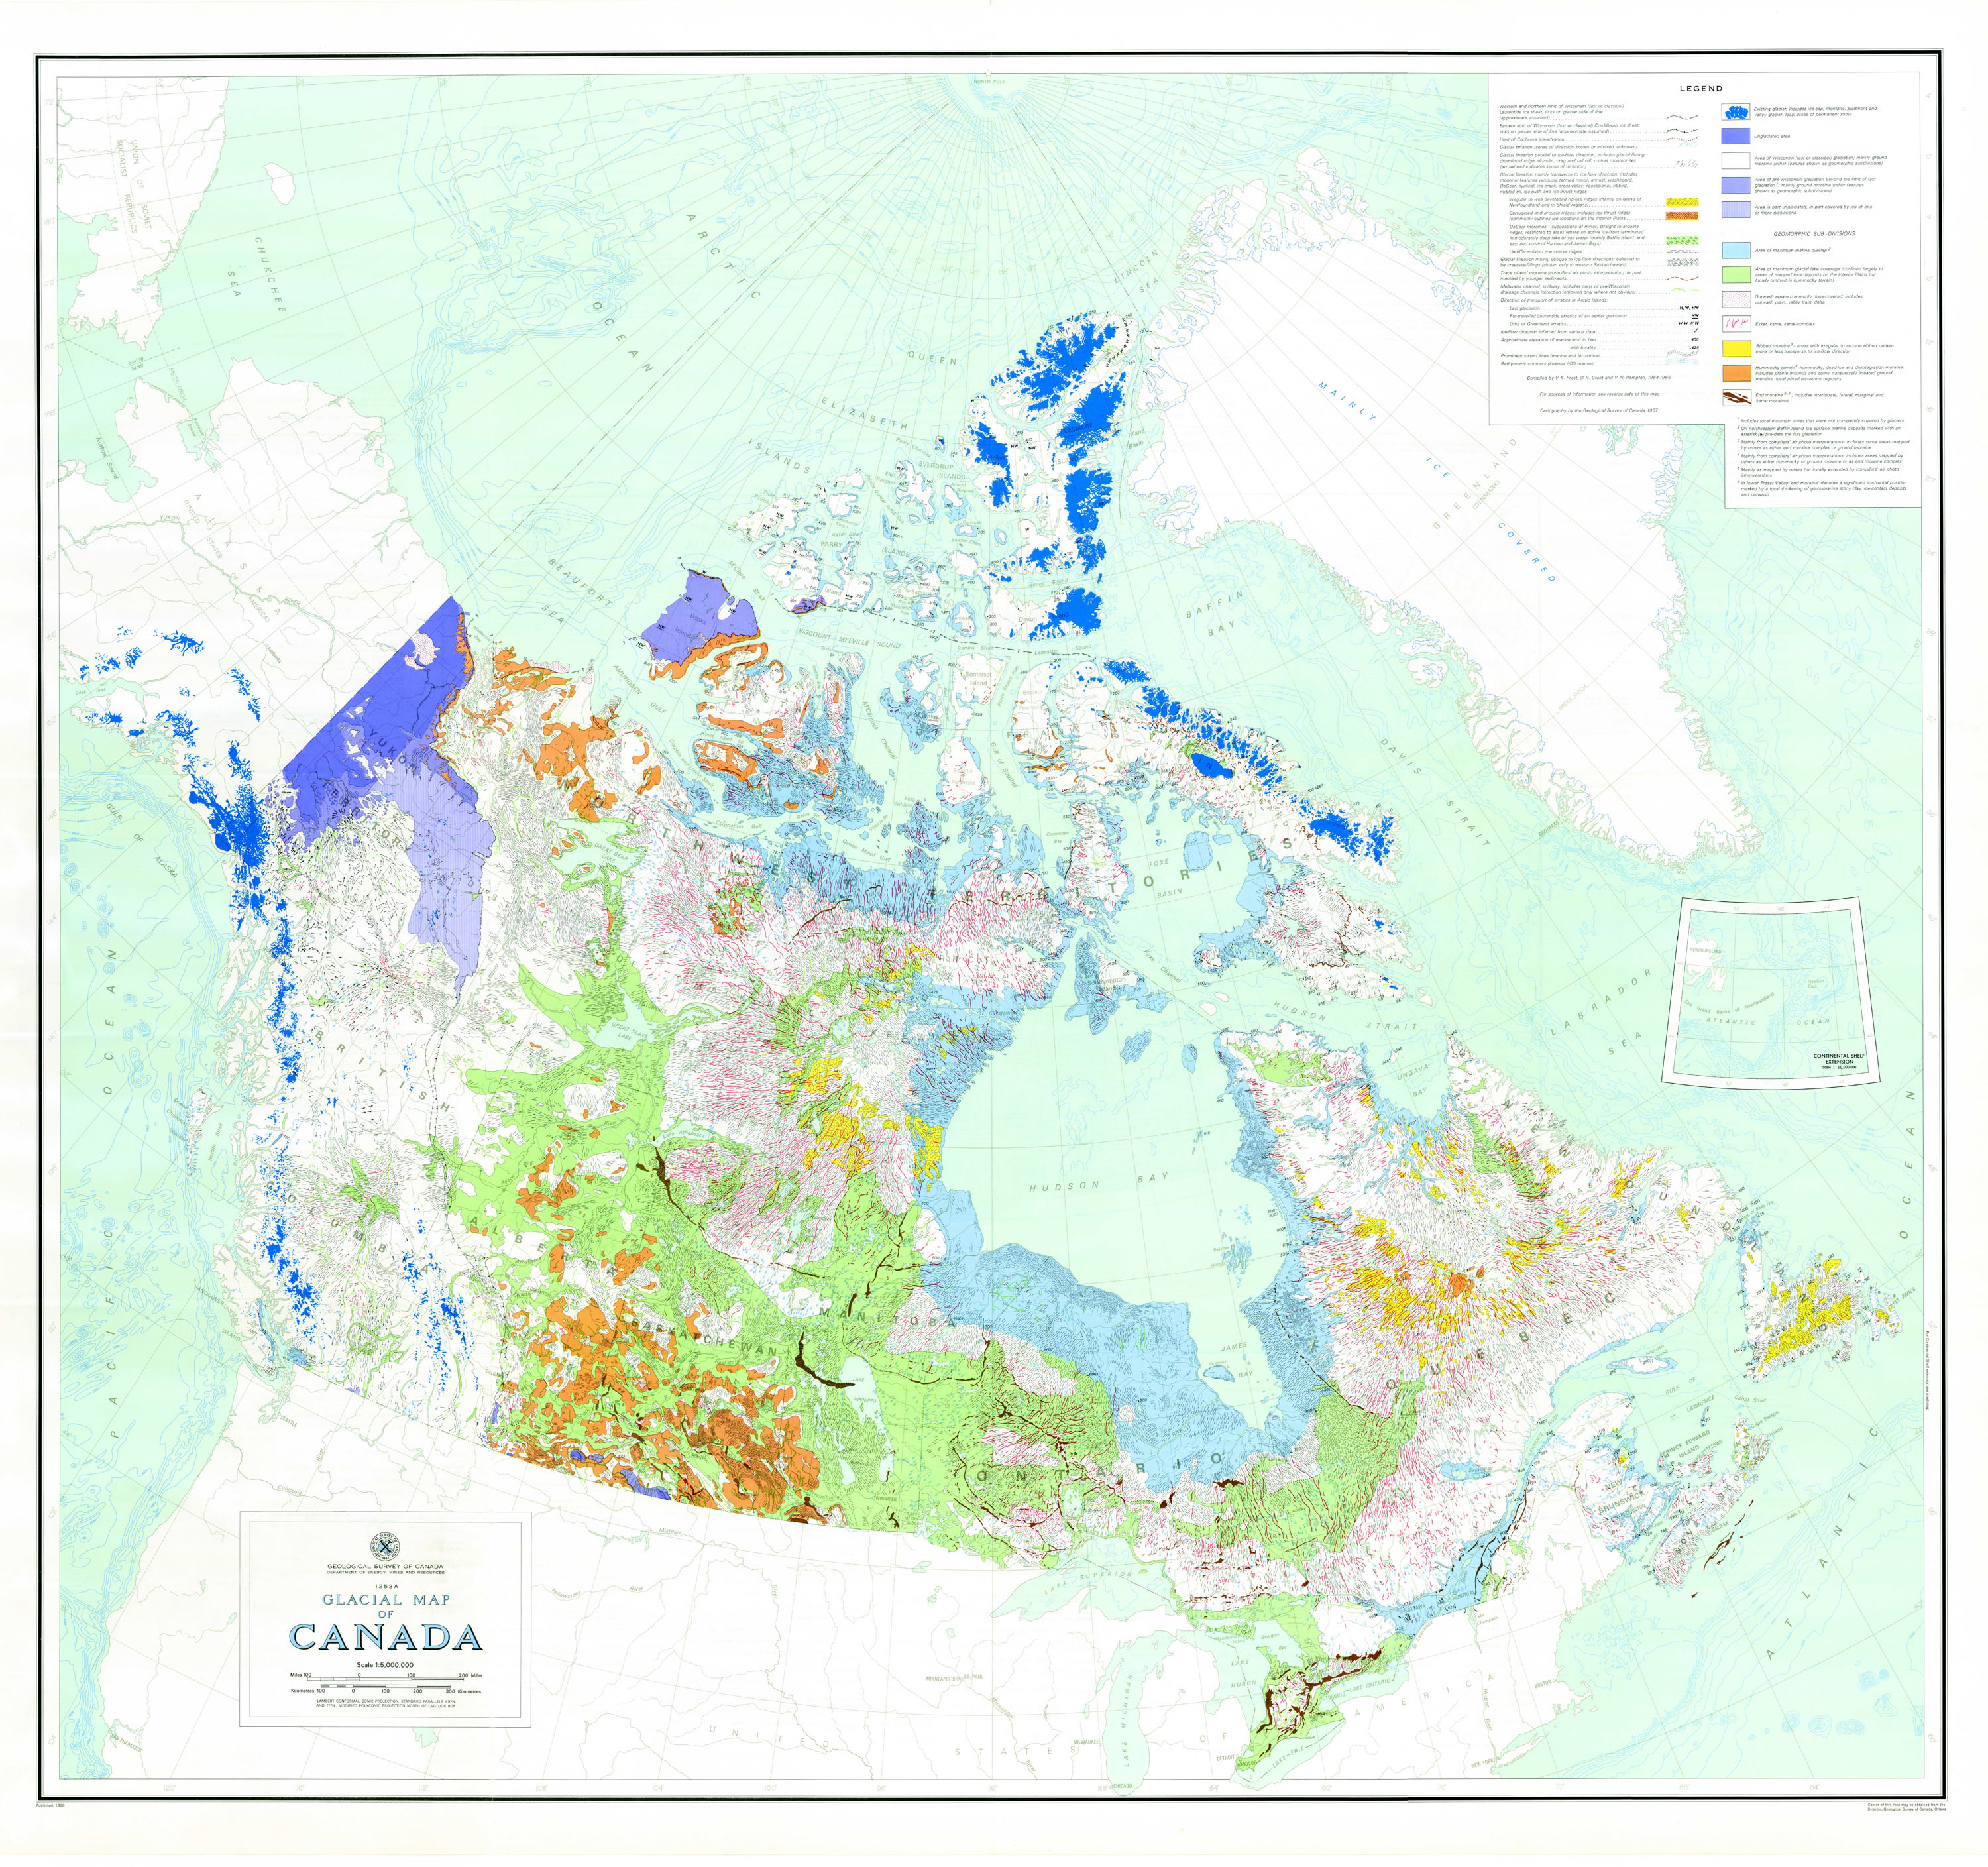 Pics Of Canada Map.106 Glacial Map Of Canada 1968 Science Gc Ca